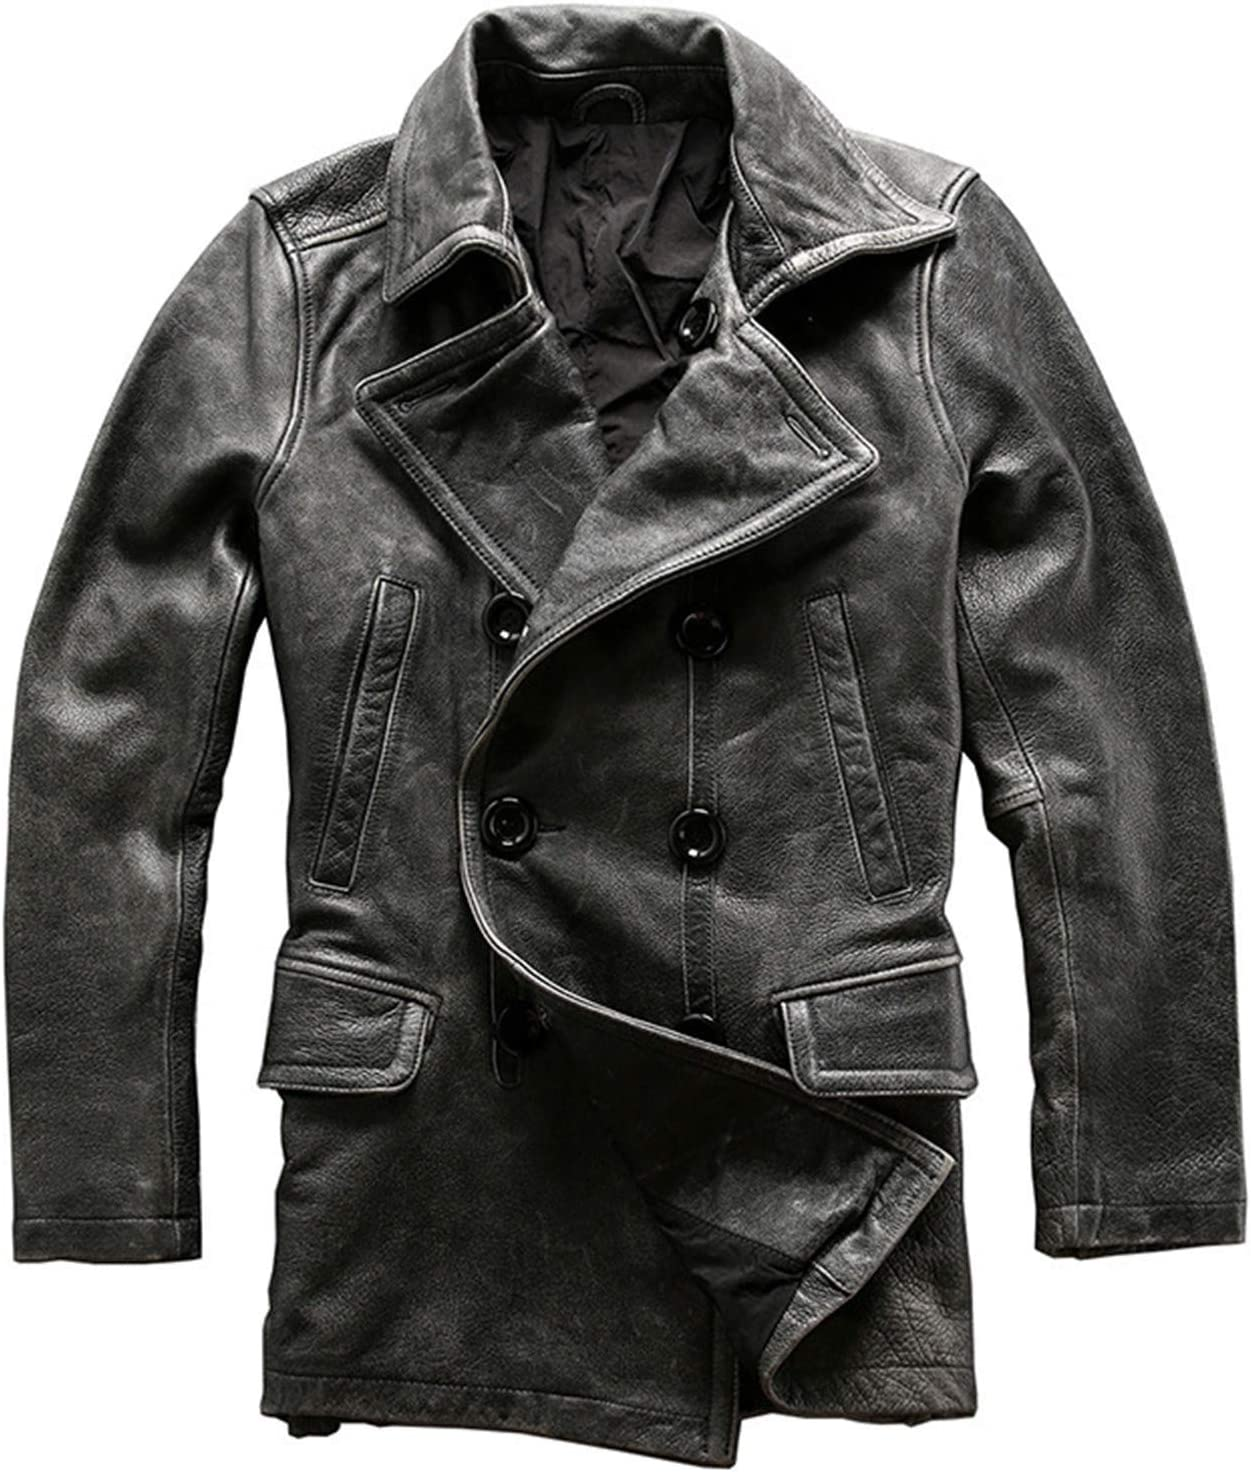 Snhpk Men's Genuine Leather Jacket Lapel Double Breasted Vintage Distressed Motorcycle Moto Mid Long Overcoat,Gray,XL